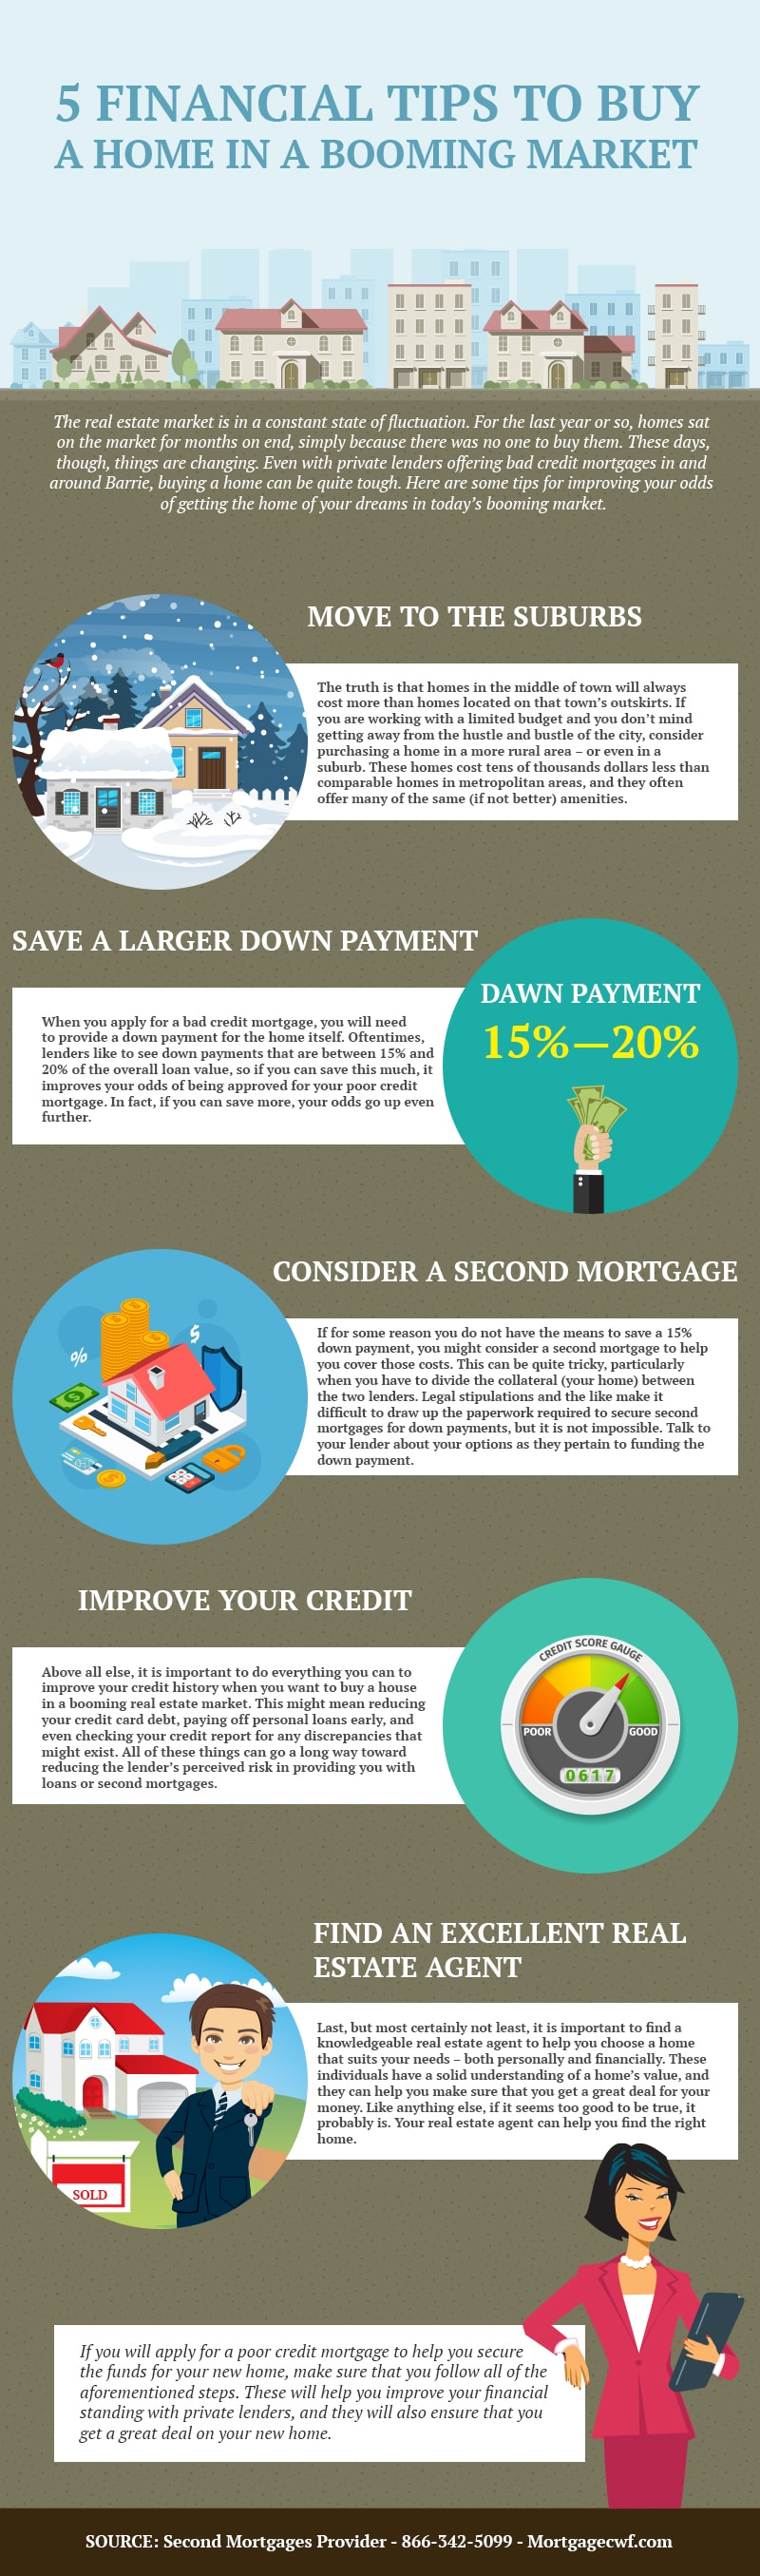 5 Financial Tips to Buy a Home in a Booming Market - Infographic